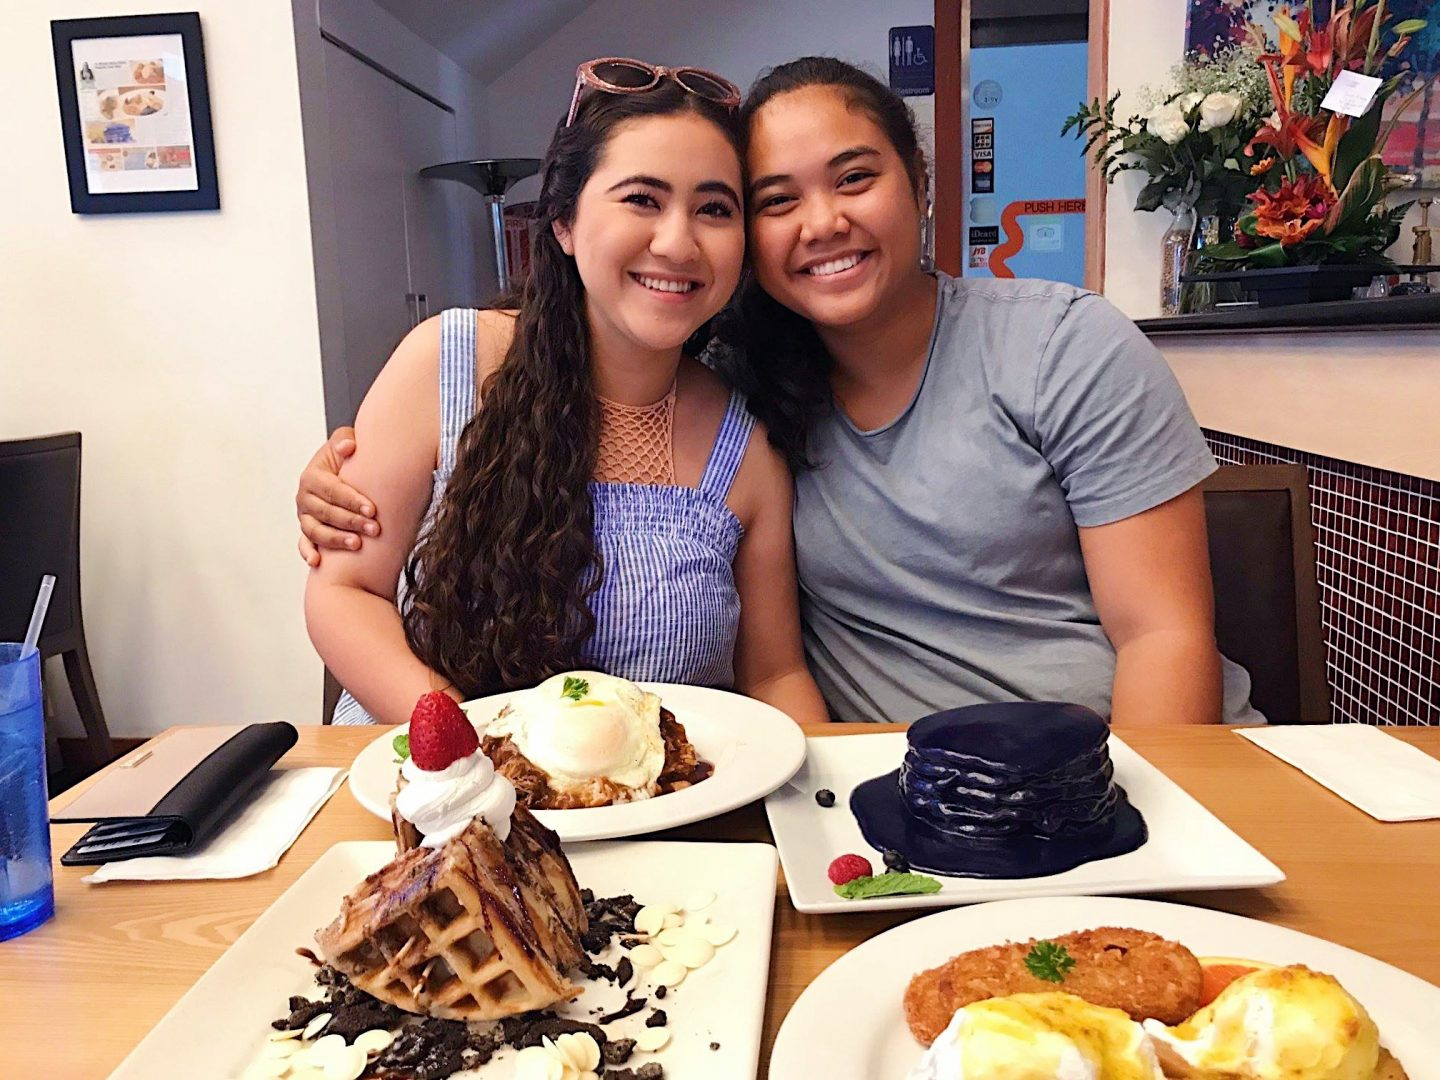 Noelle and Kaiʻolu at breakfast